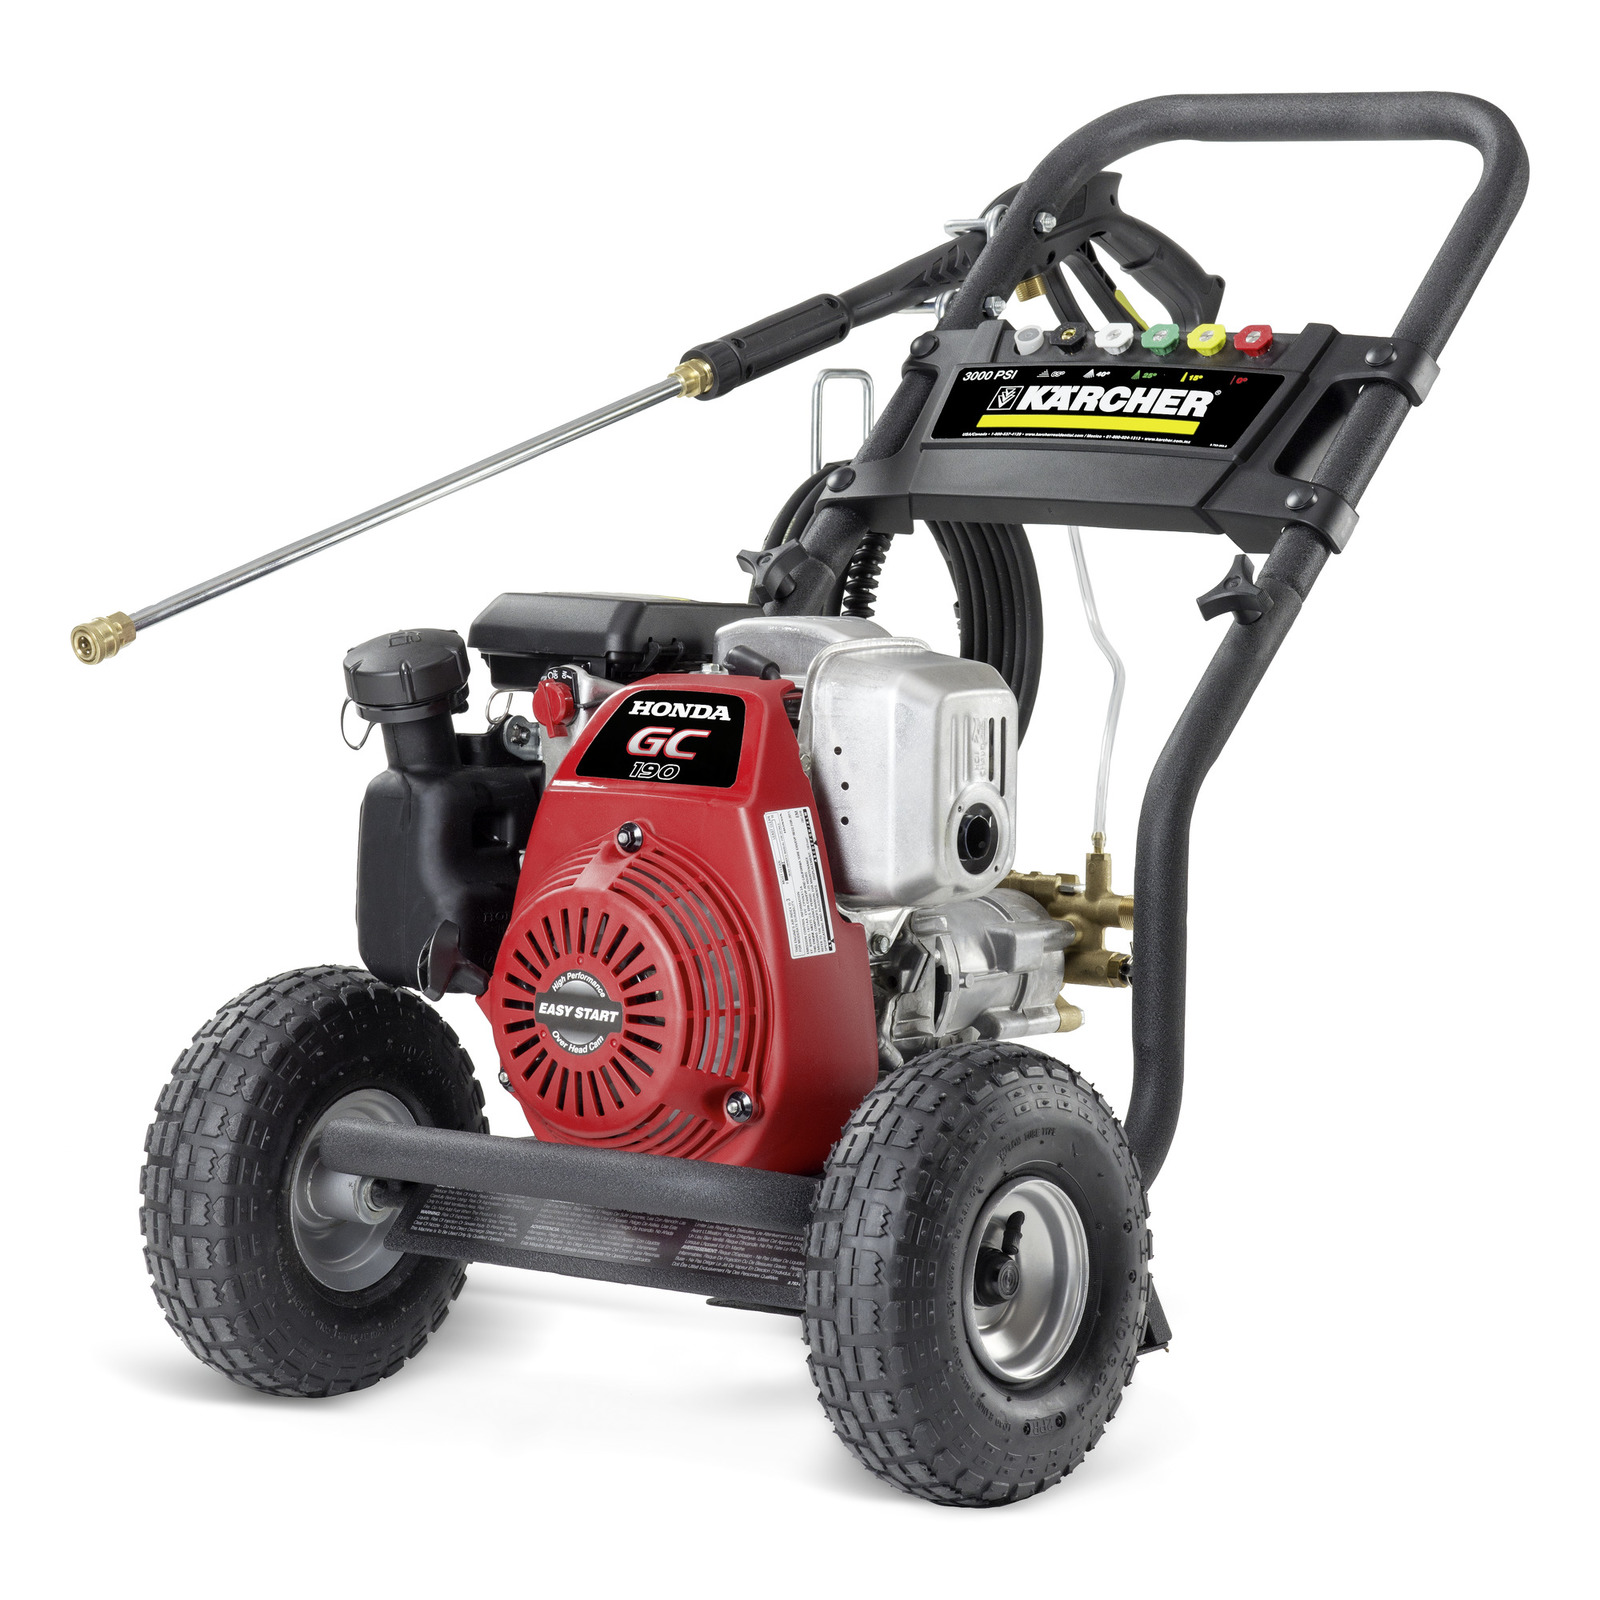 Features Include A Honda GC190 Engine, Quick Connect High Pressure Hose And  Pneumatics Tires With Metal Wheel Rims.